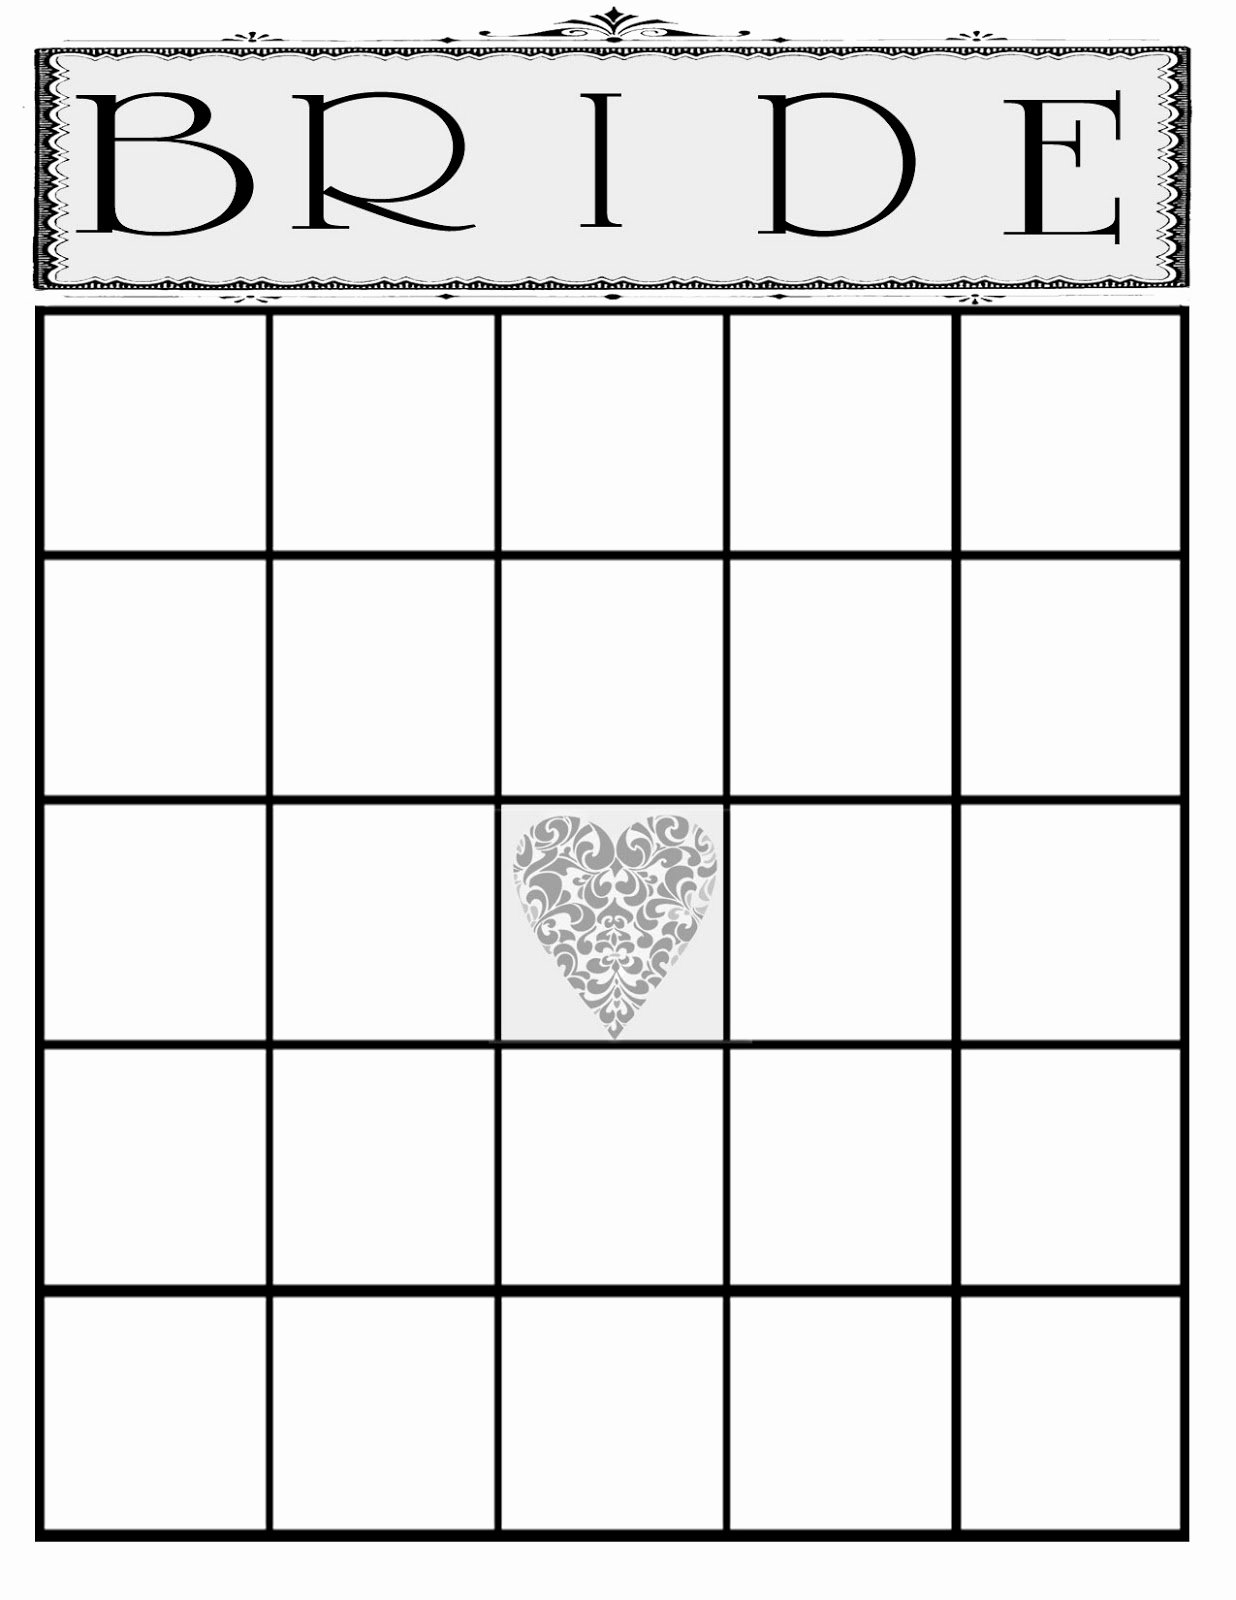 Bridal Shower Bingo Template Free Unique the Creative Pointe A Beautiful Bridal Shower and A